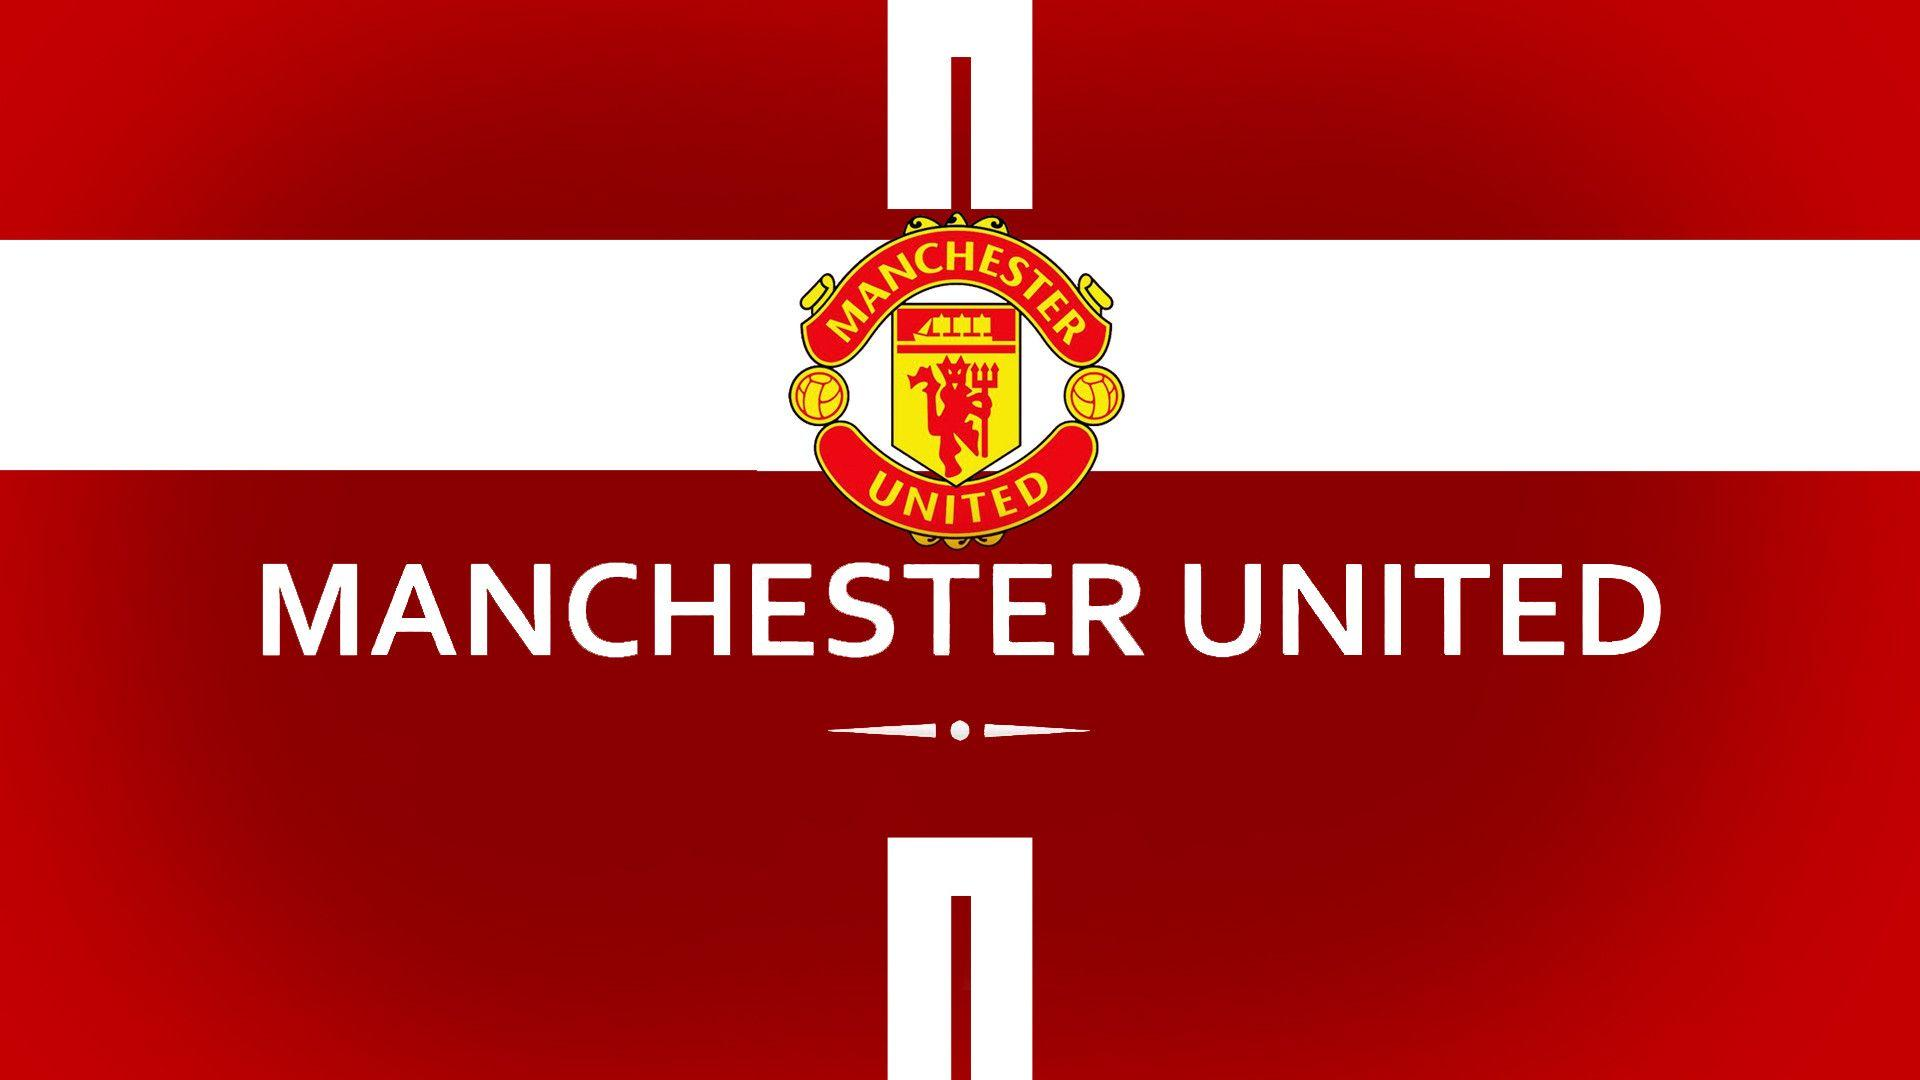 manchester united wallpapers 1 - photo #11